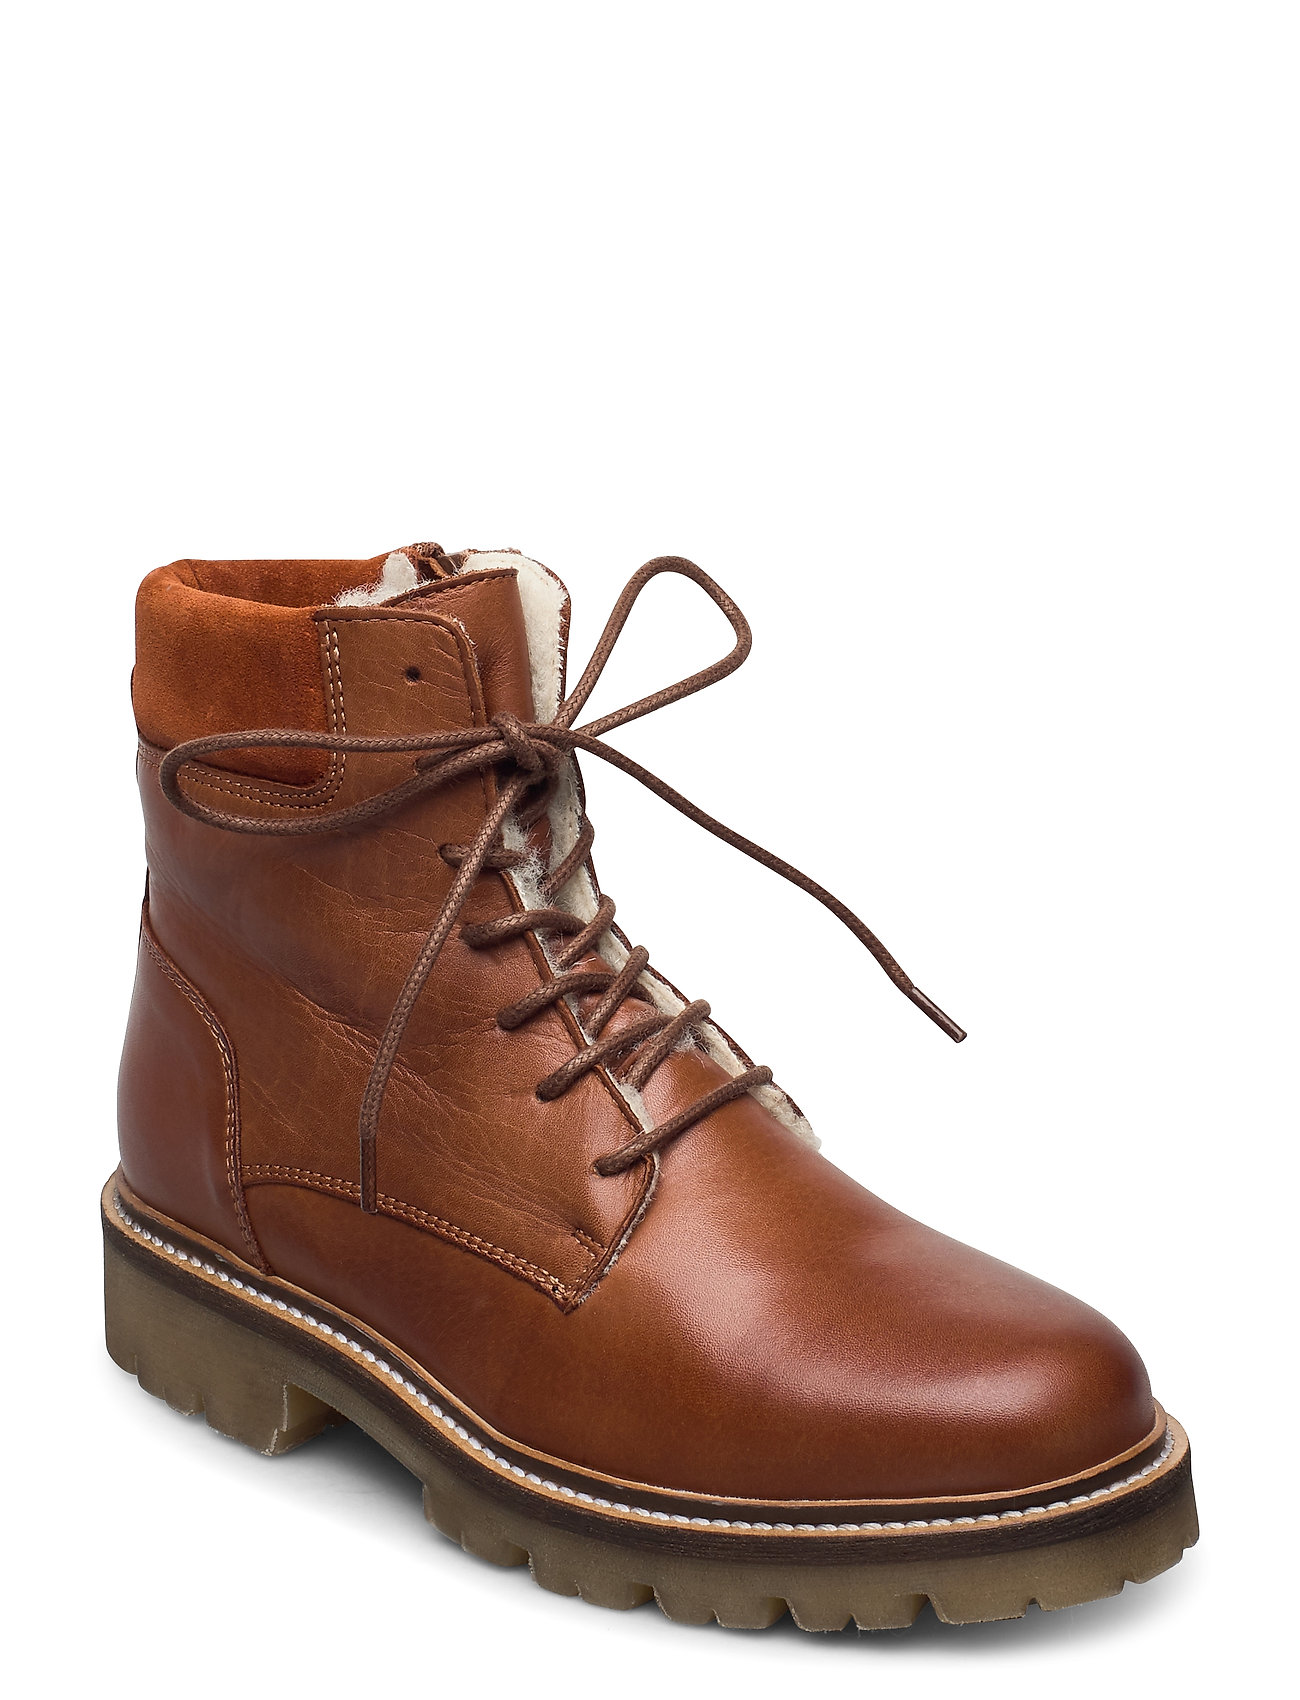 Image of Biadiya Laced Warm Boot Shoes Boots Ankle Boots Ankle Boot - Flat Brun Bianco (3437802013)